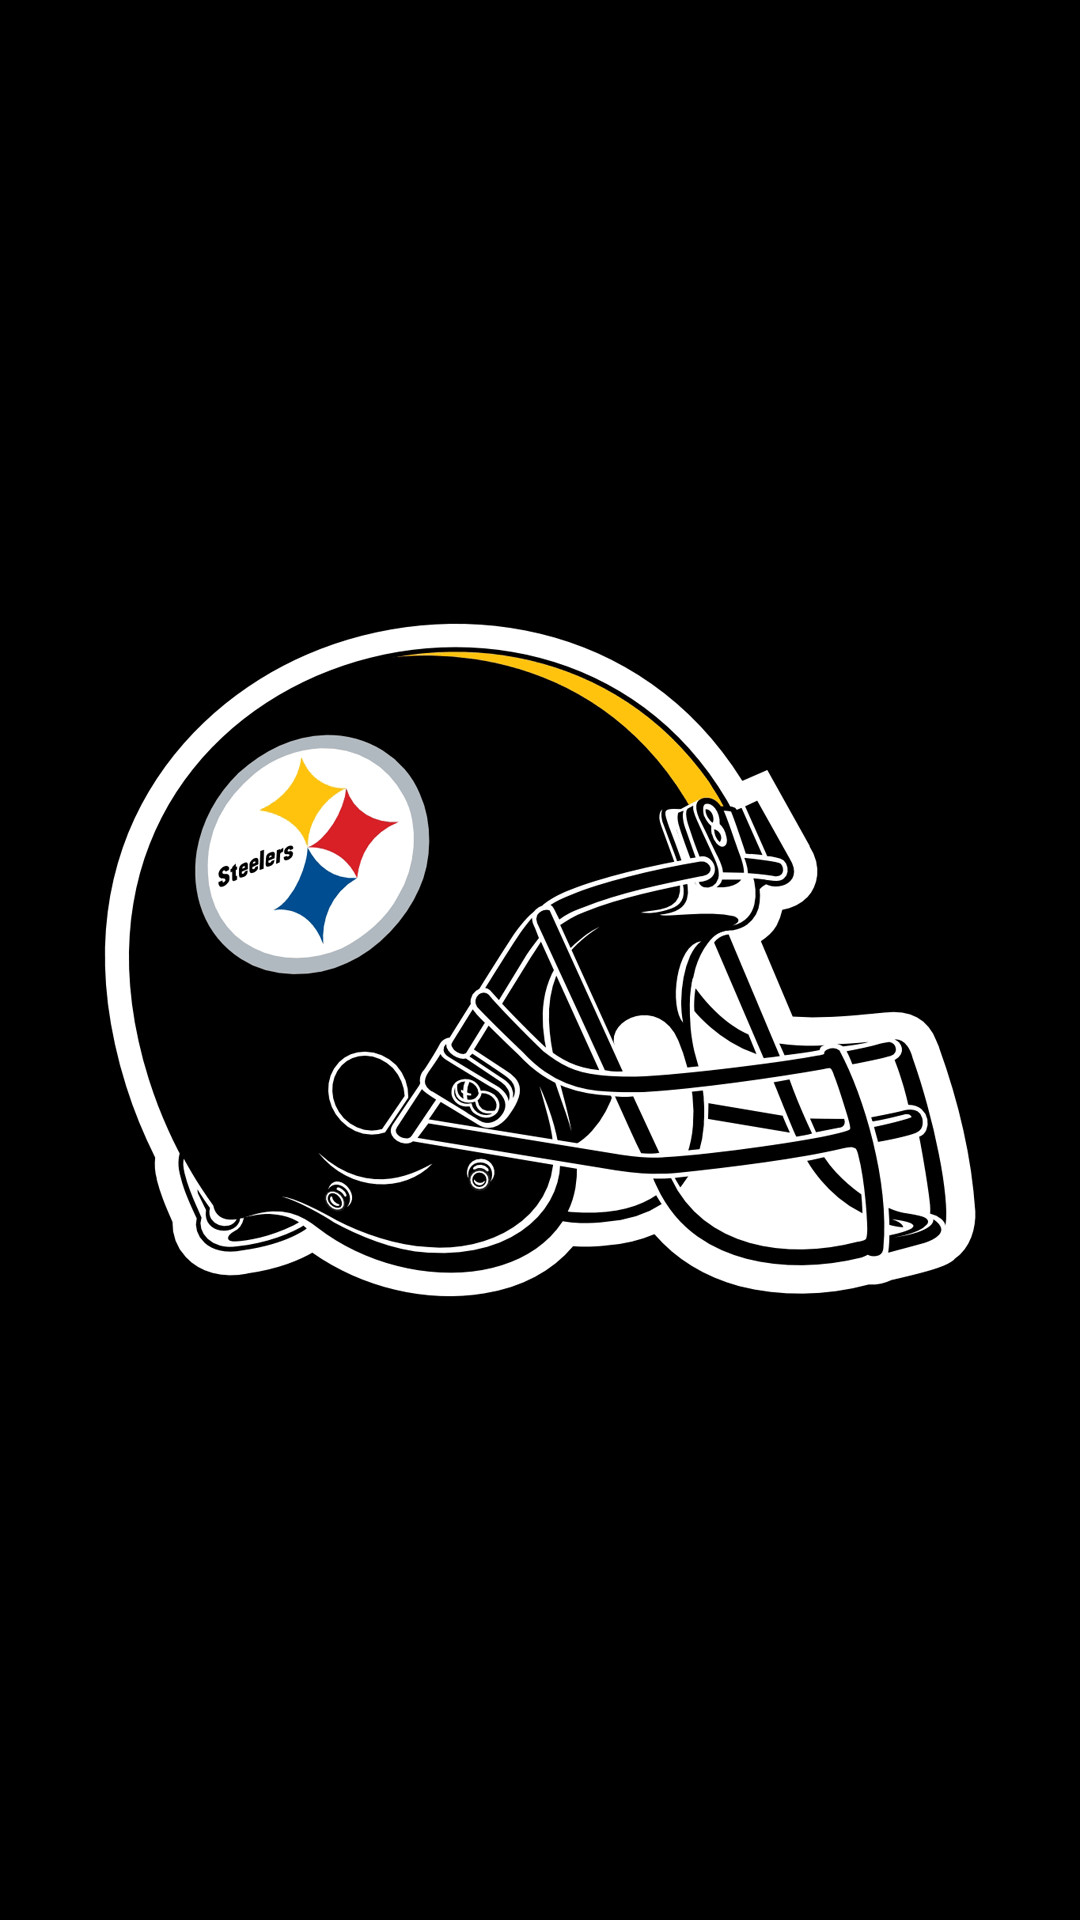 Pittsburgh steelers wallpaper 69 images - Steelers background ...